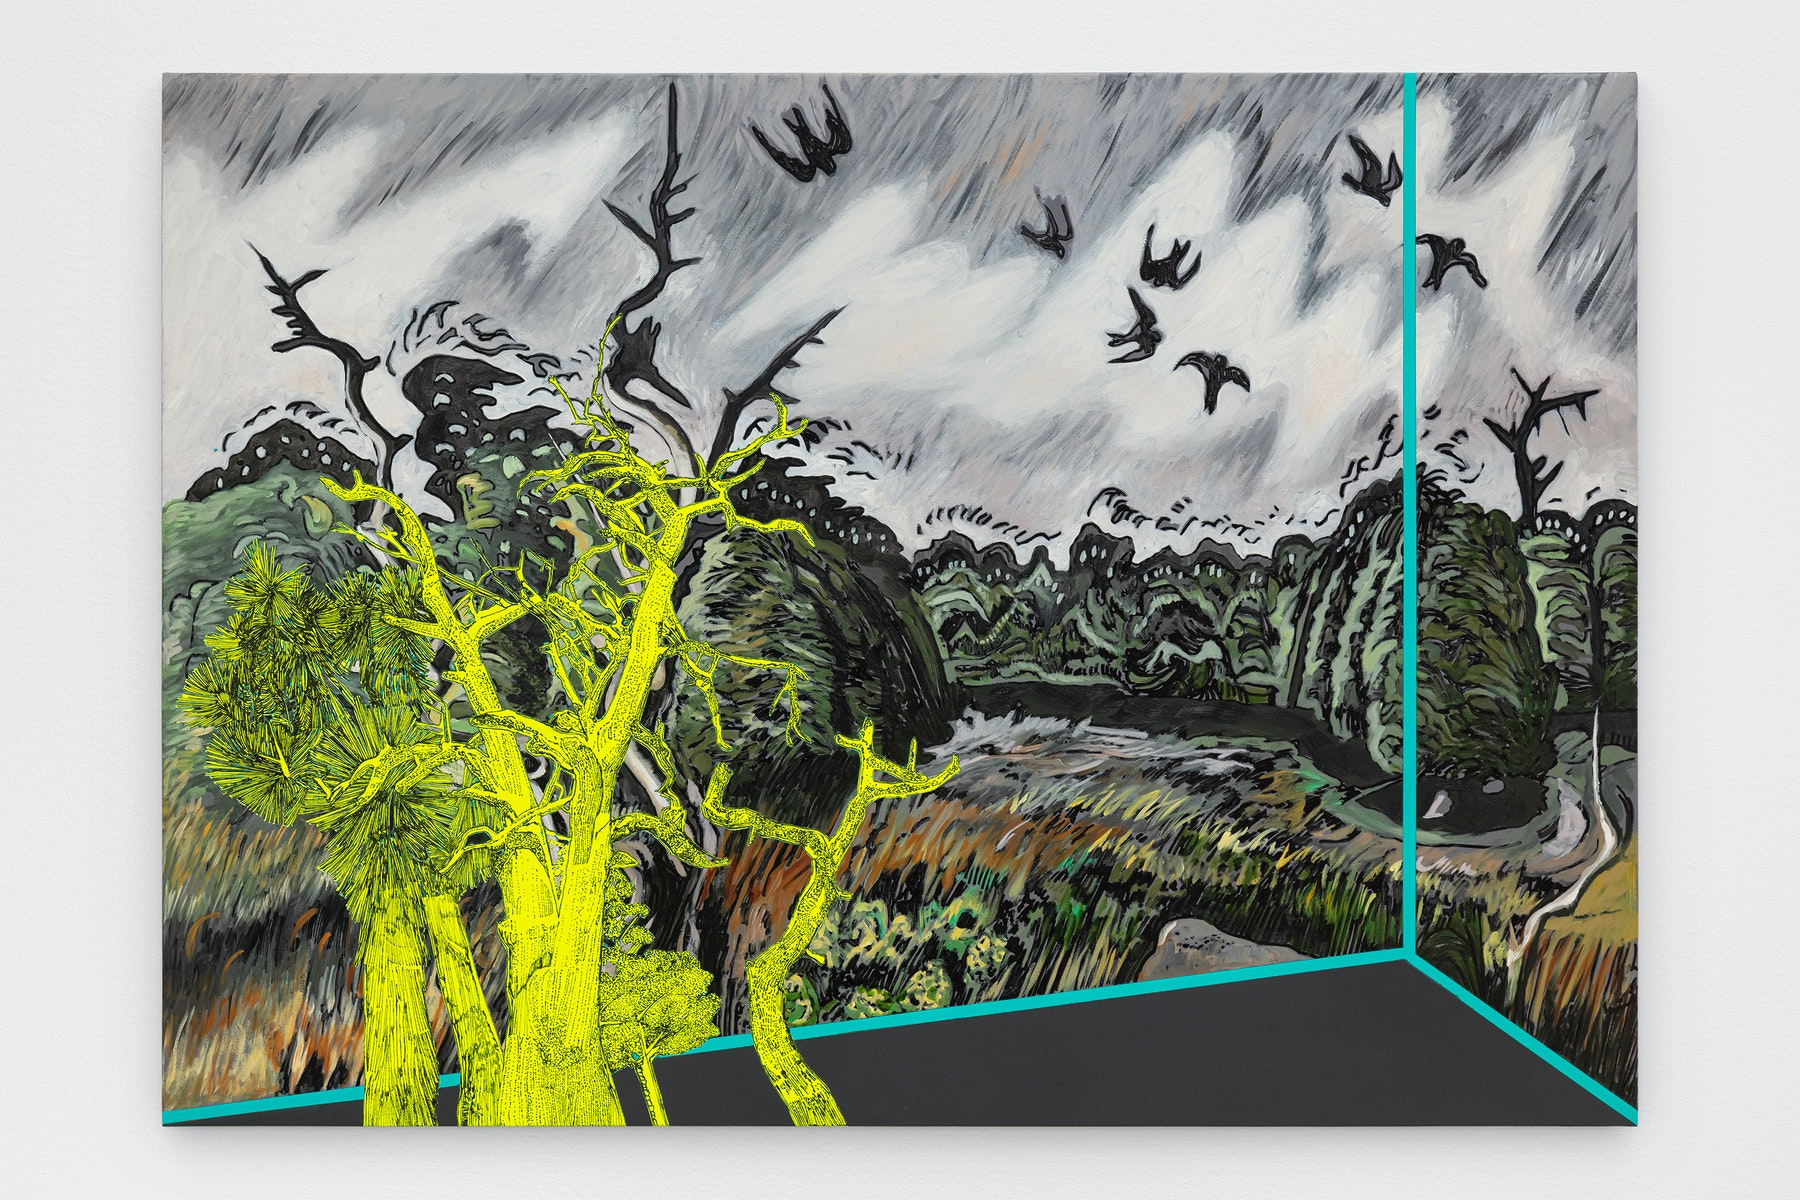 """Whitney Bedford """"Veduta (Burchfield Nighthawks),"""" 2021 Ink and oil on linen on hybrid panel 33 ¹⁄₂"""" x 47"""" x 2"""" [HxWxD] (85.09 x 119.38 x 5.08 cm) Inventory #BED406 Courtesy of the artist and Vielmetter Los Angeles Photo credit: Evan Bedford"""